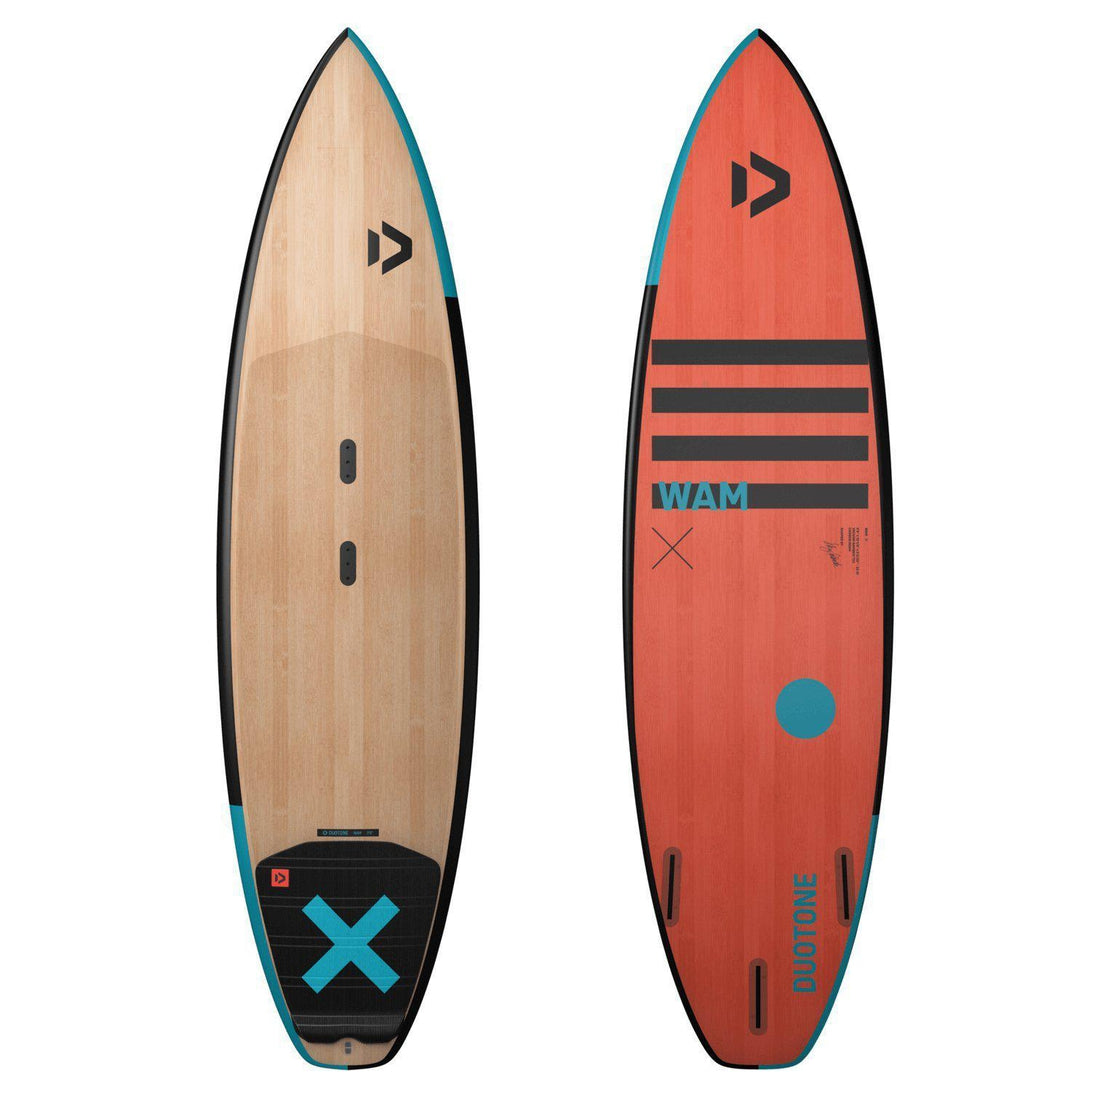 2020 Duotone Wam Kite Surfboard-Big Winds